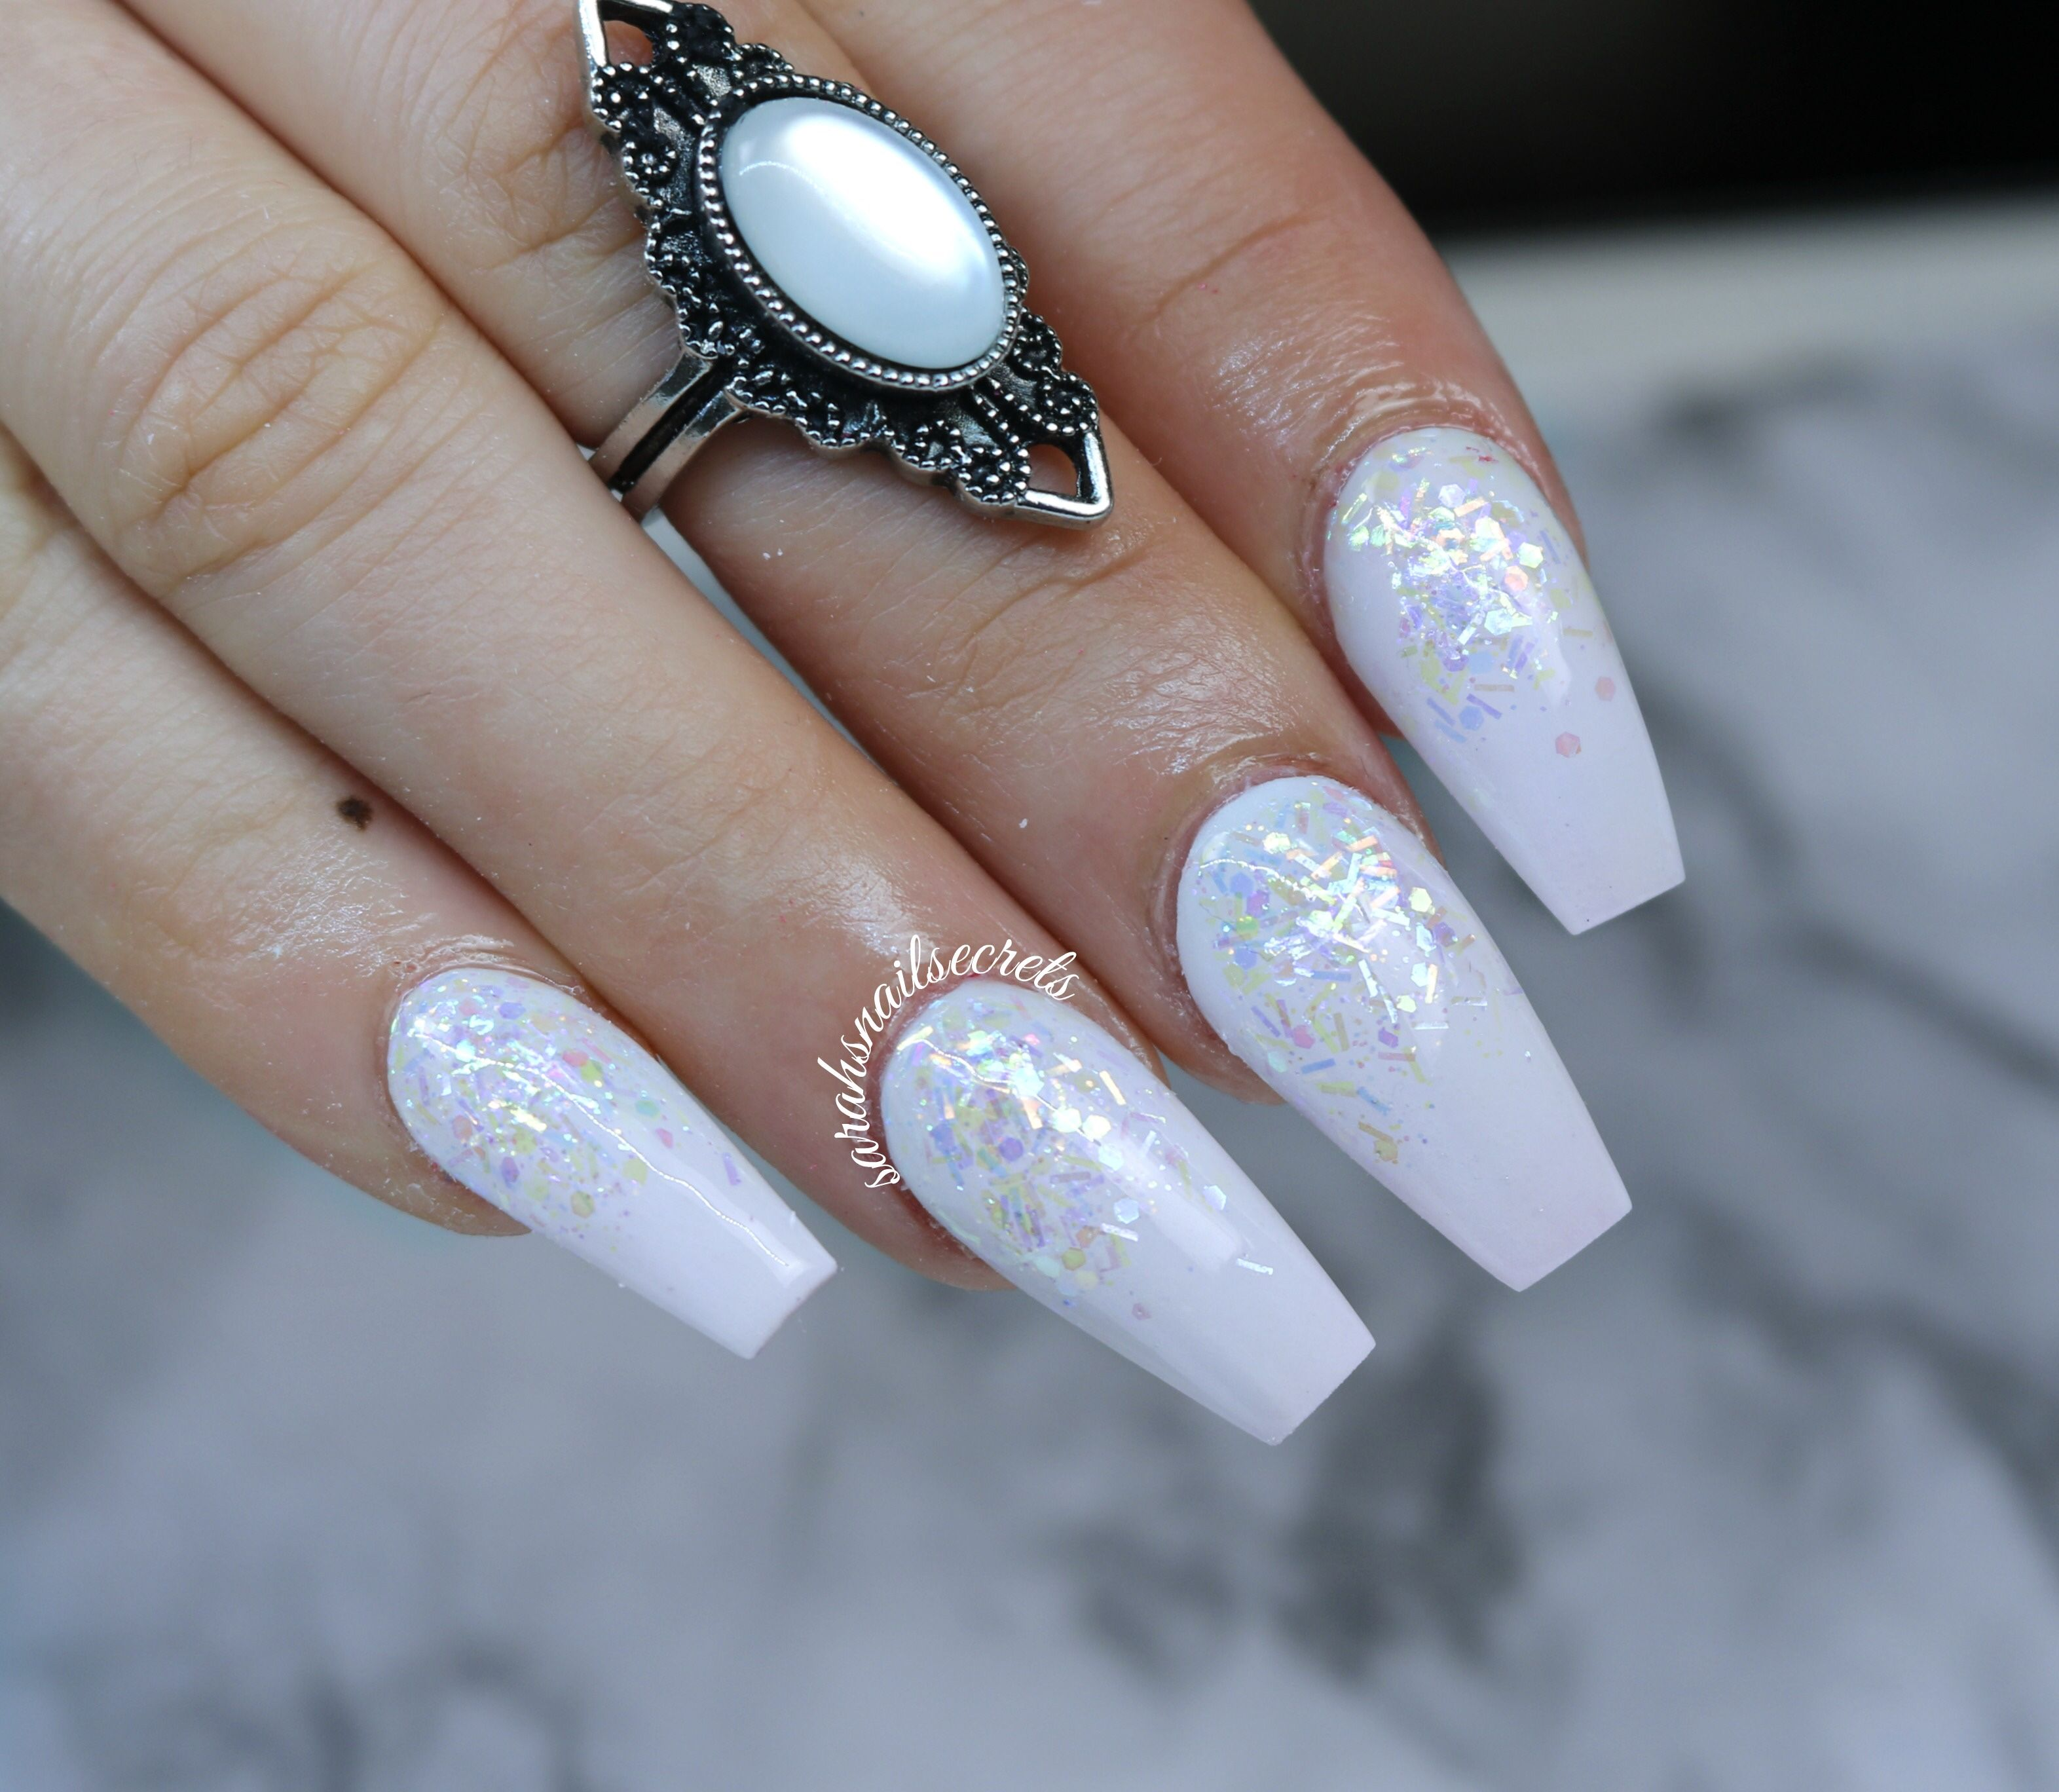 Magnificent White Nails With Glitter Fade Elaboration - Nail Art ...